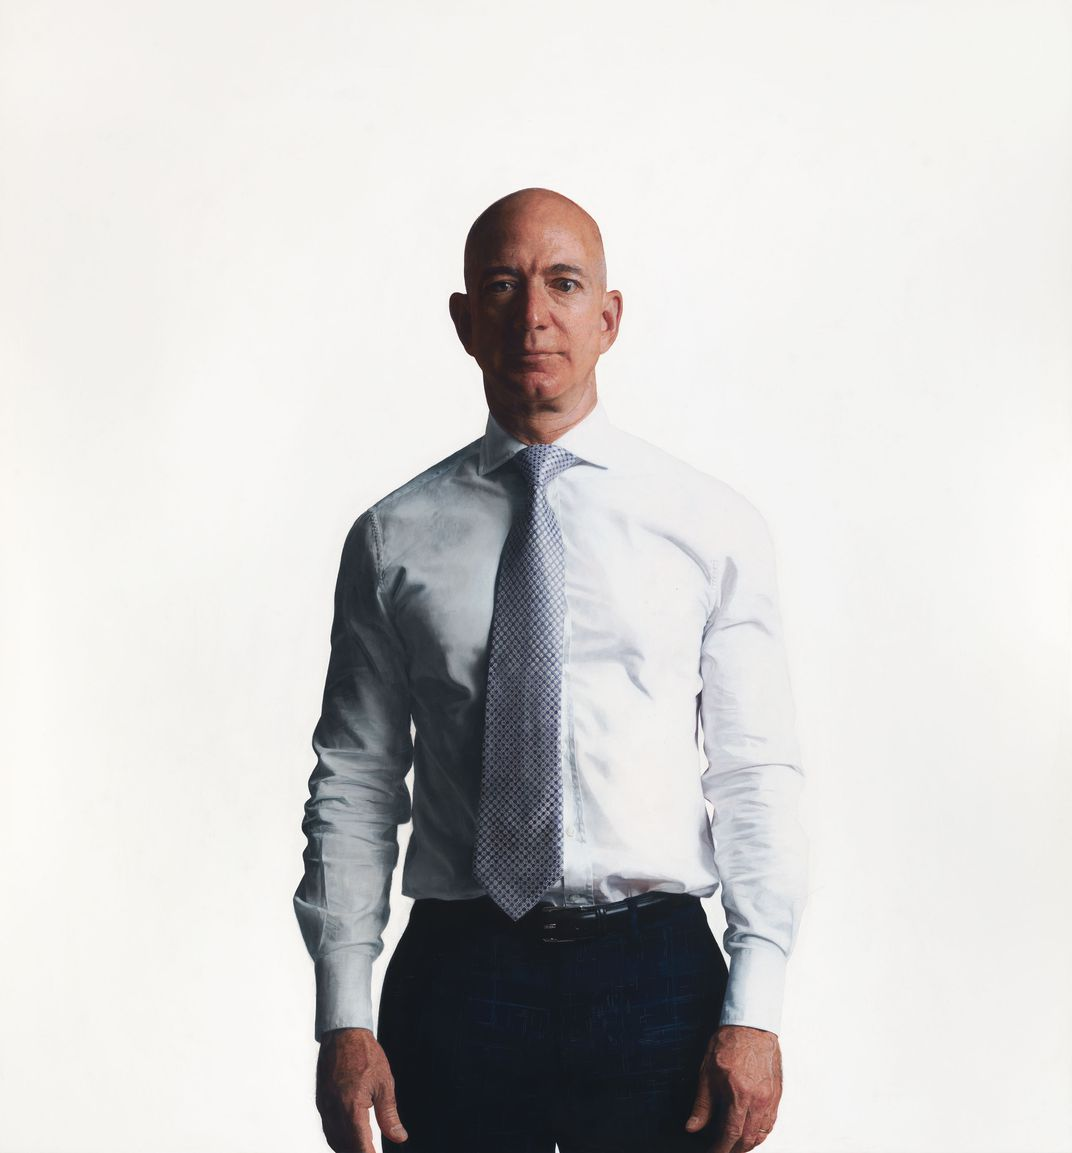 Untitled, Jeffrey Bezos, Robert McCurdy